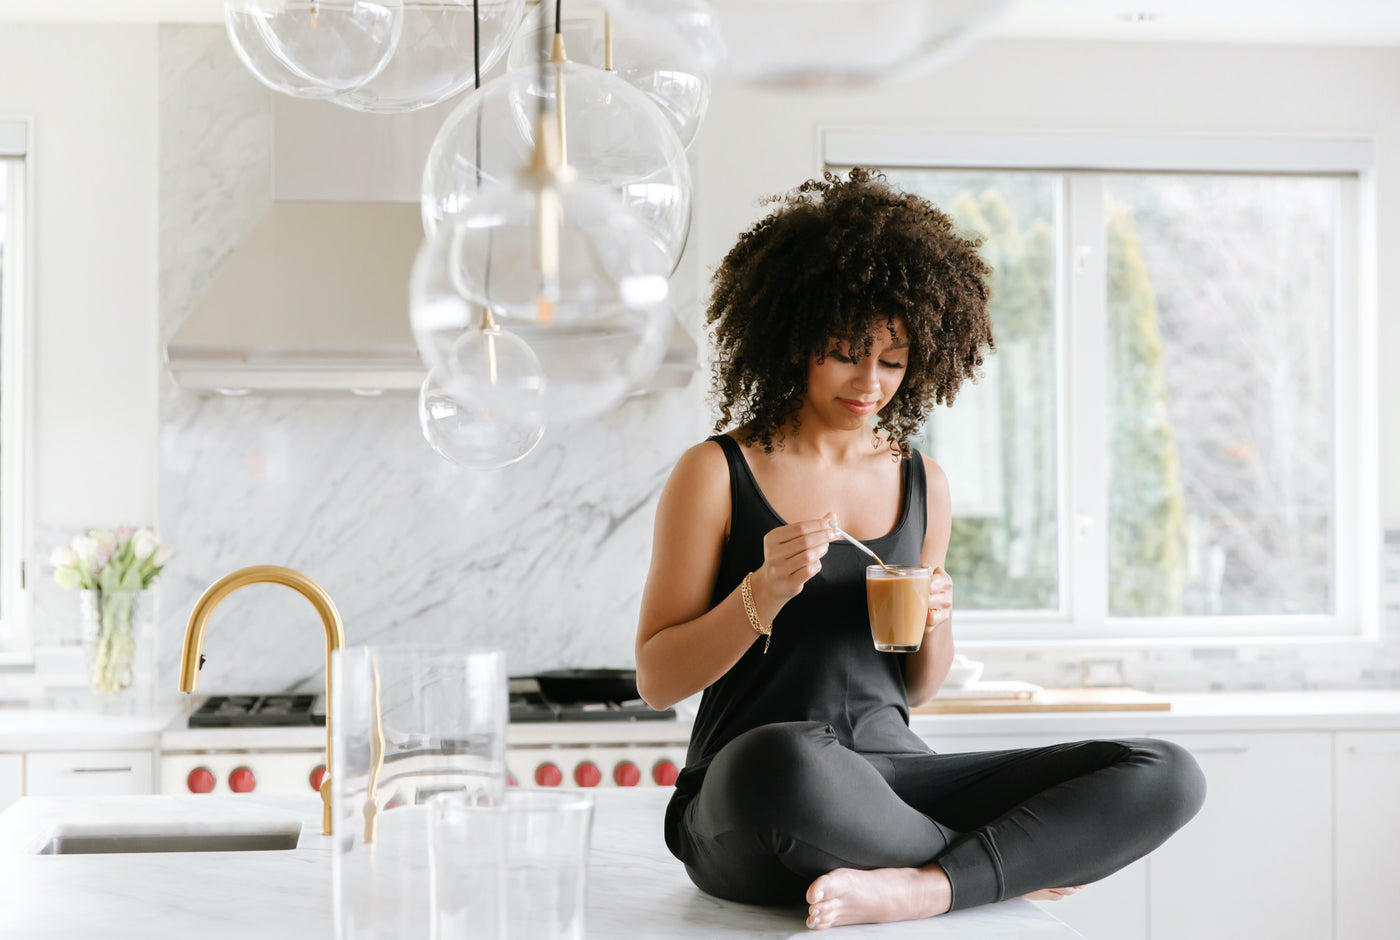 model wearing black smash + tess romper drinking coffee in the kitchen